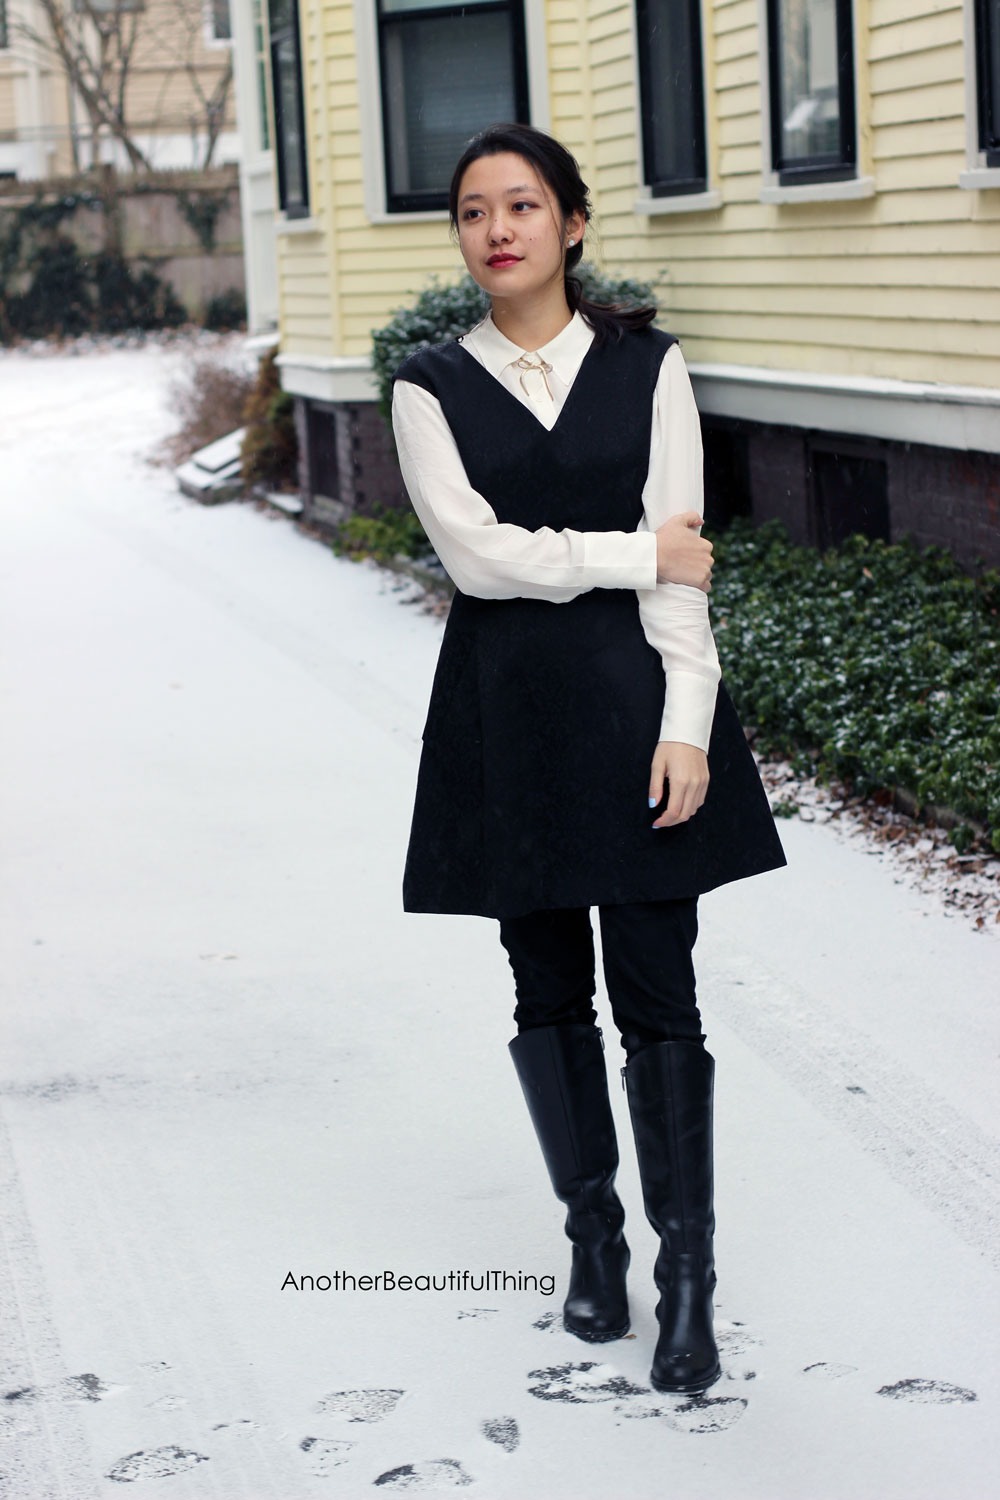 Winter styling for your wardrobe - silk shirt under a v neck dress